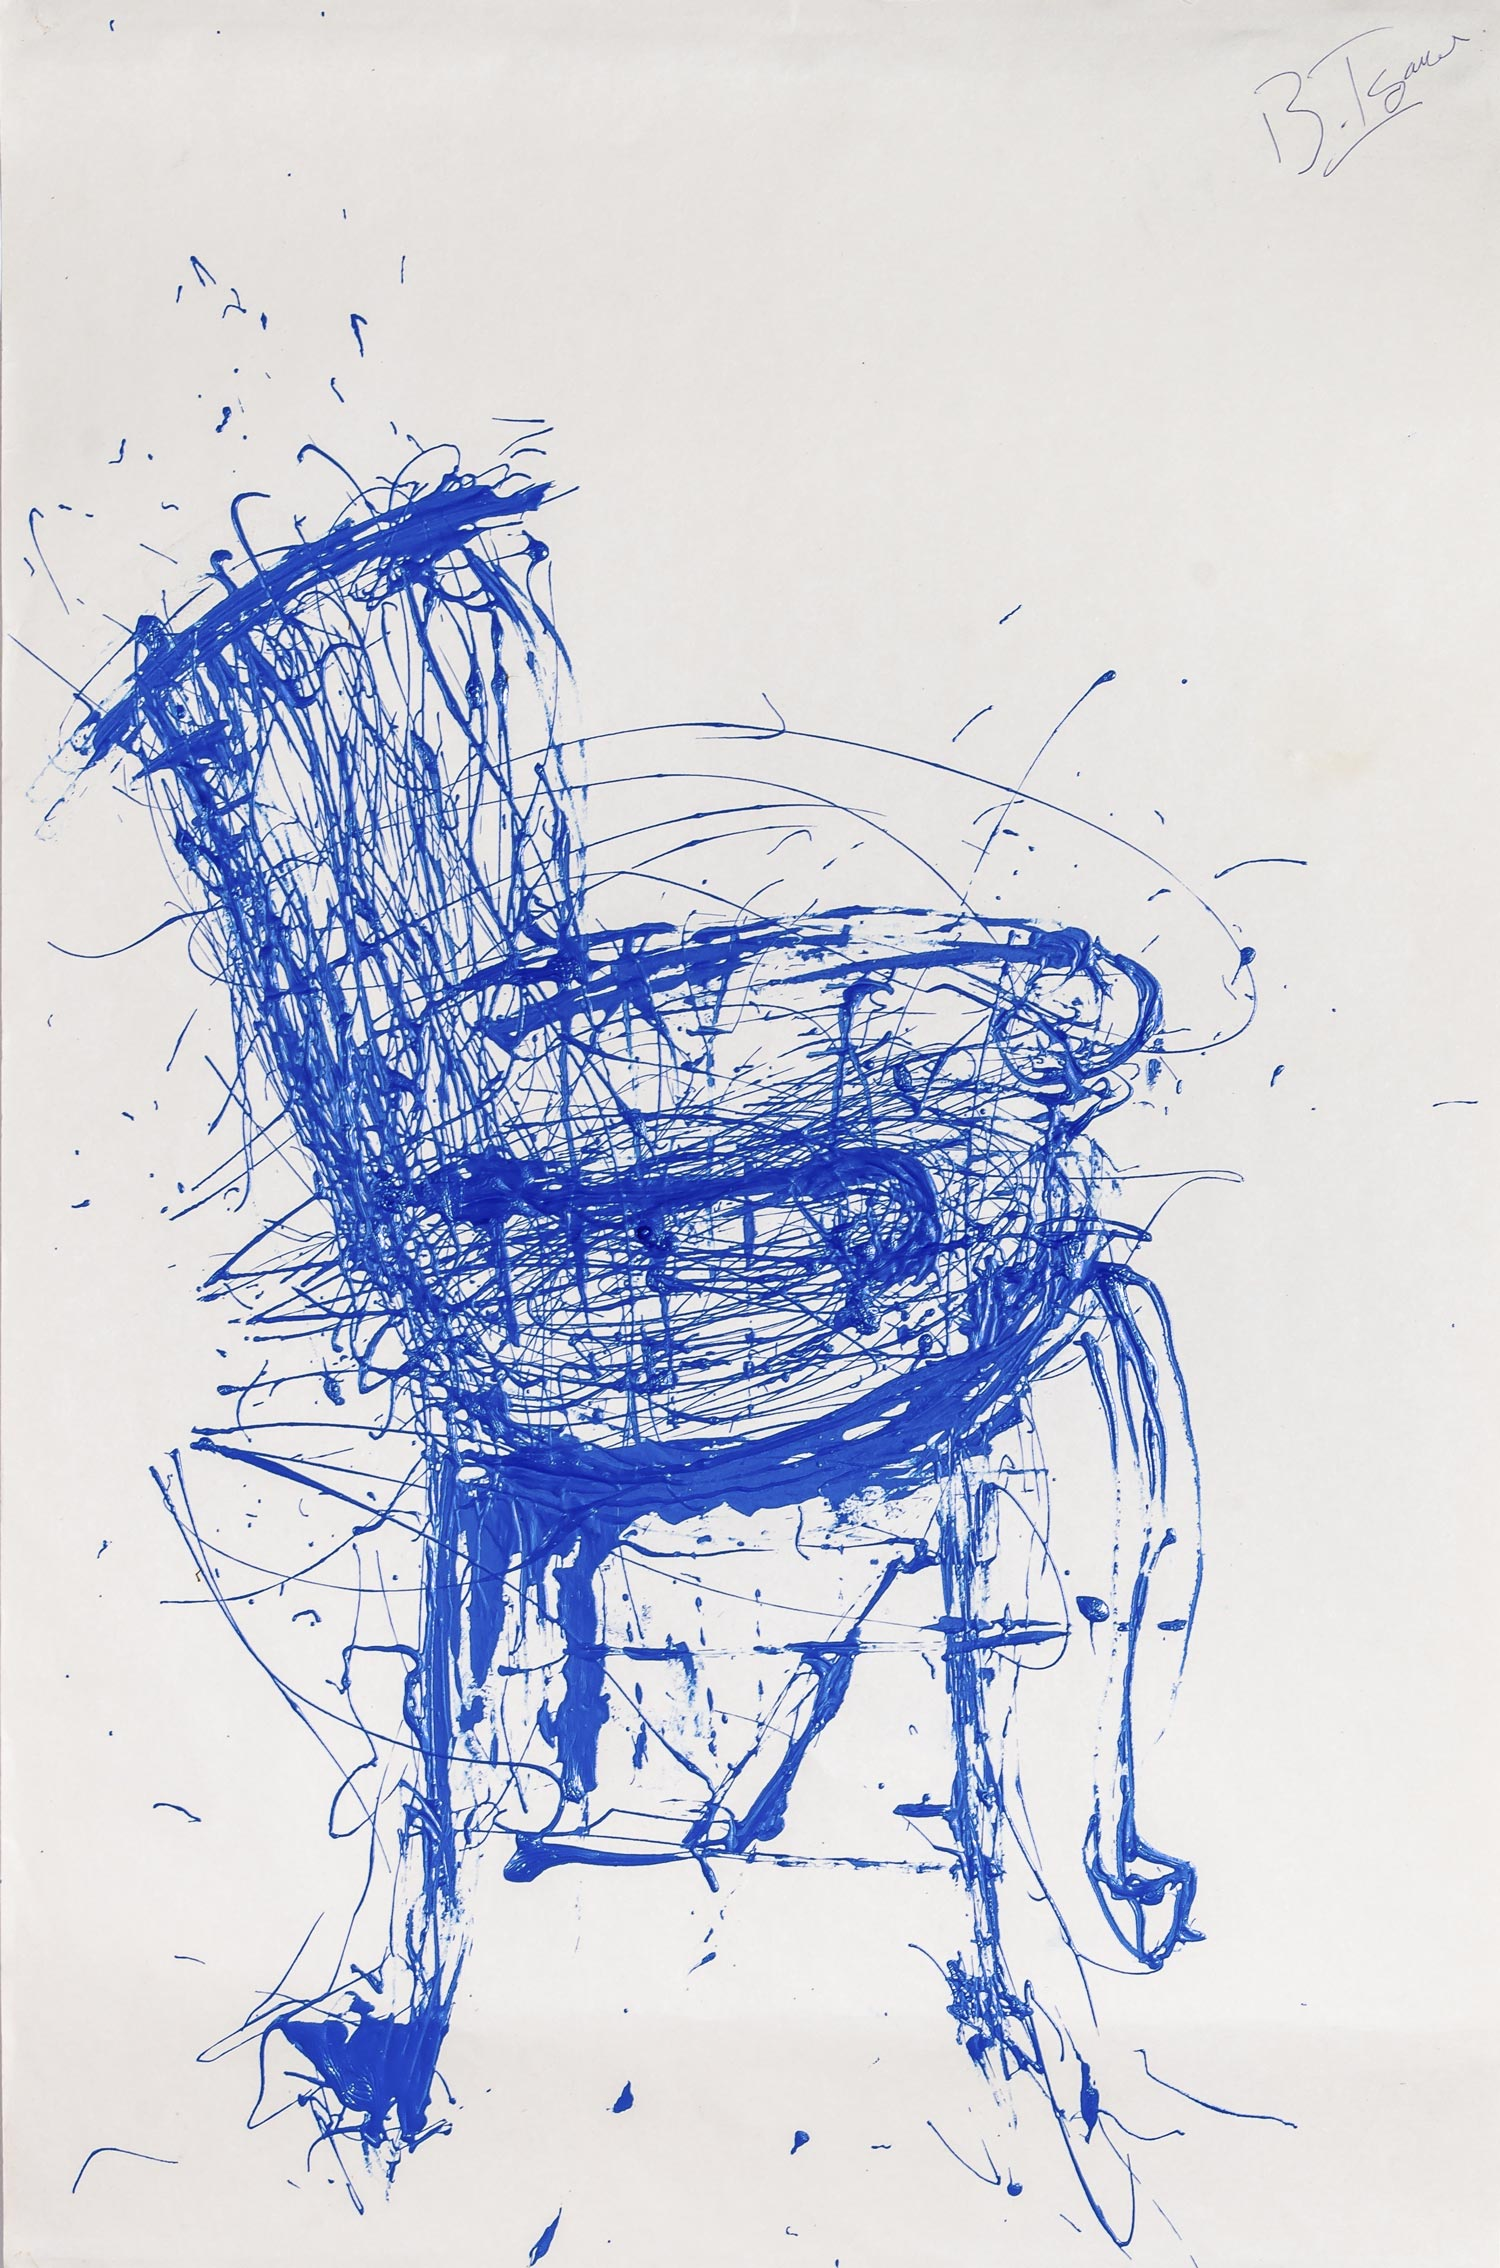 BLUE CHAIR #1  Industrial Paint on Paper |48 x 72 cm